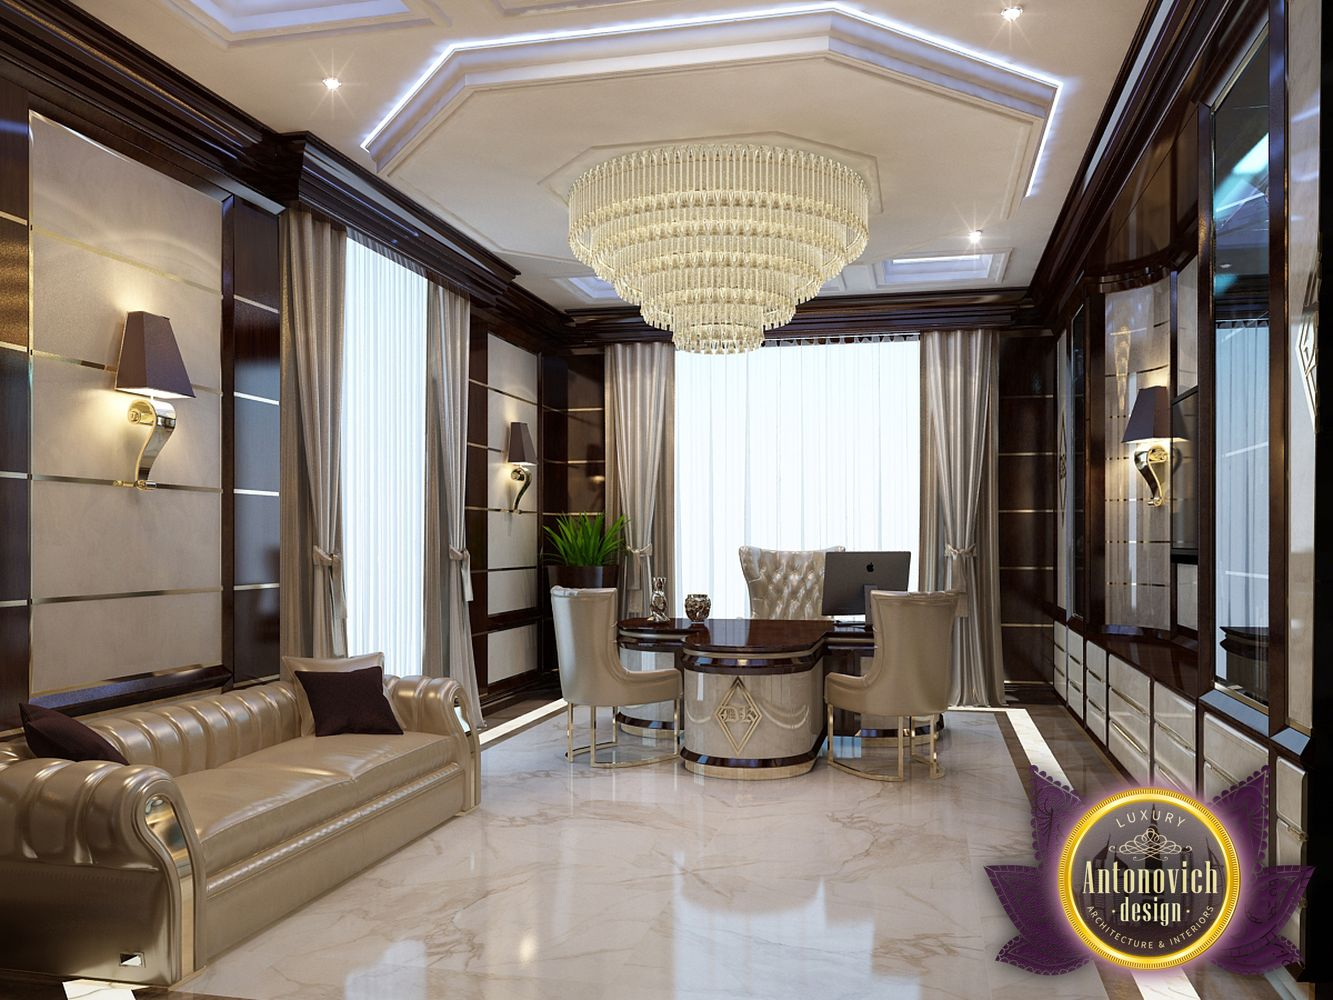 Luxury antonovich design uae office design ideas by for Interior designs videos